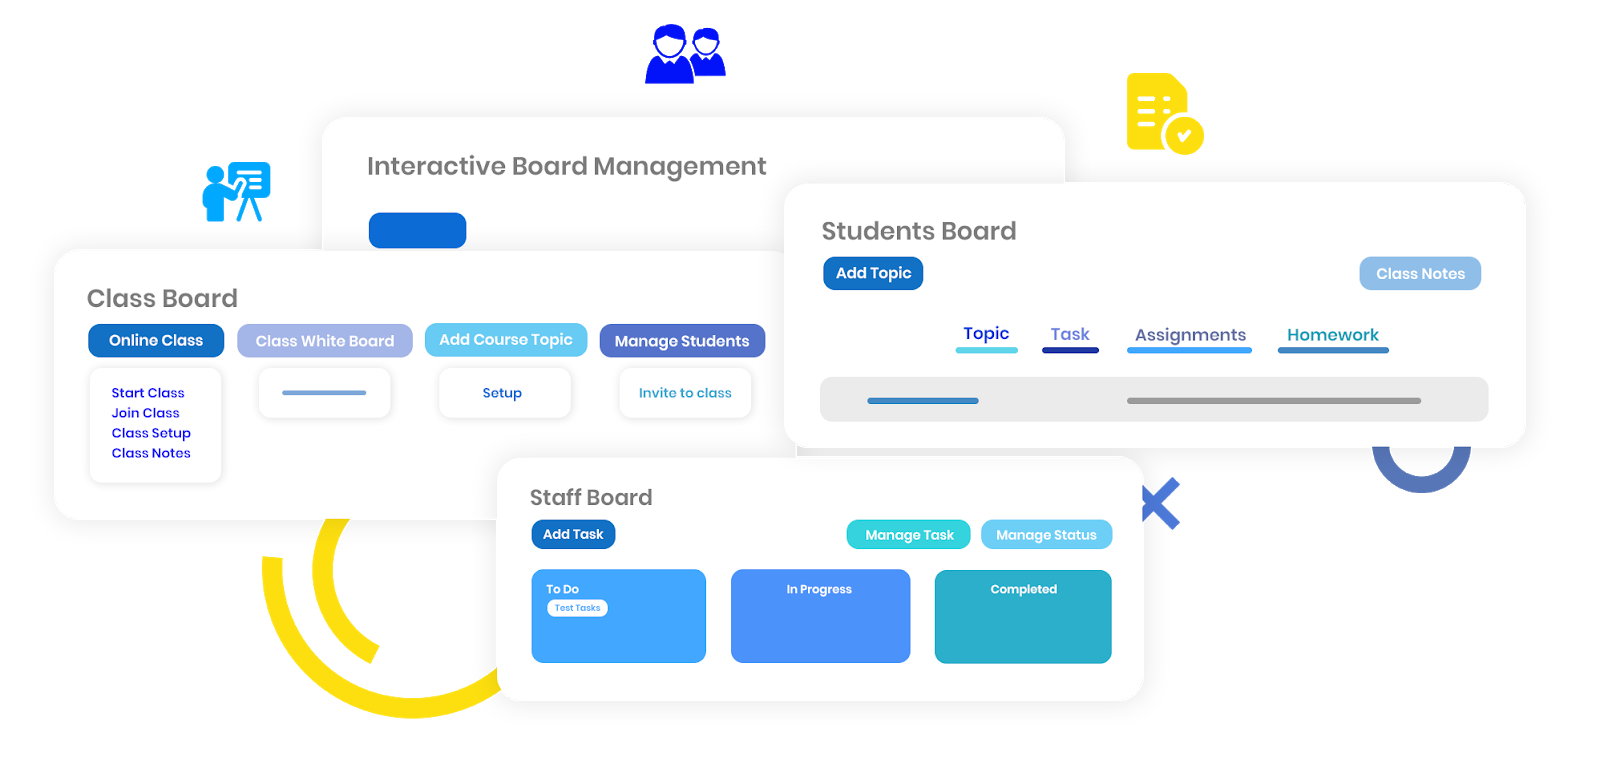 Calimatic LMS - Interactive Board Management for Students, Staff, Class